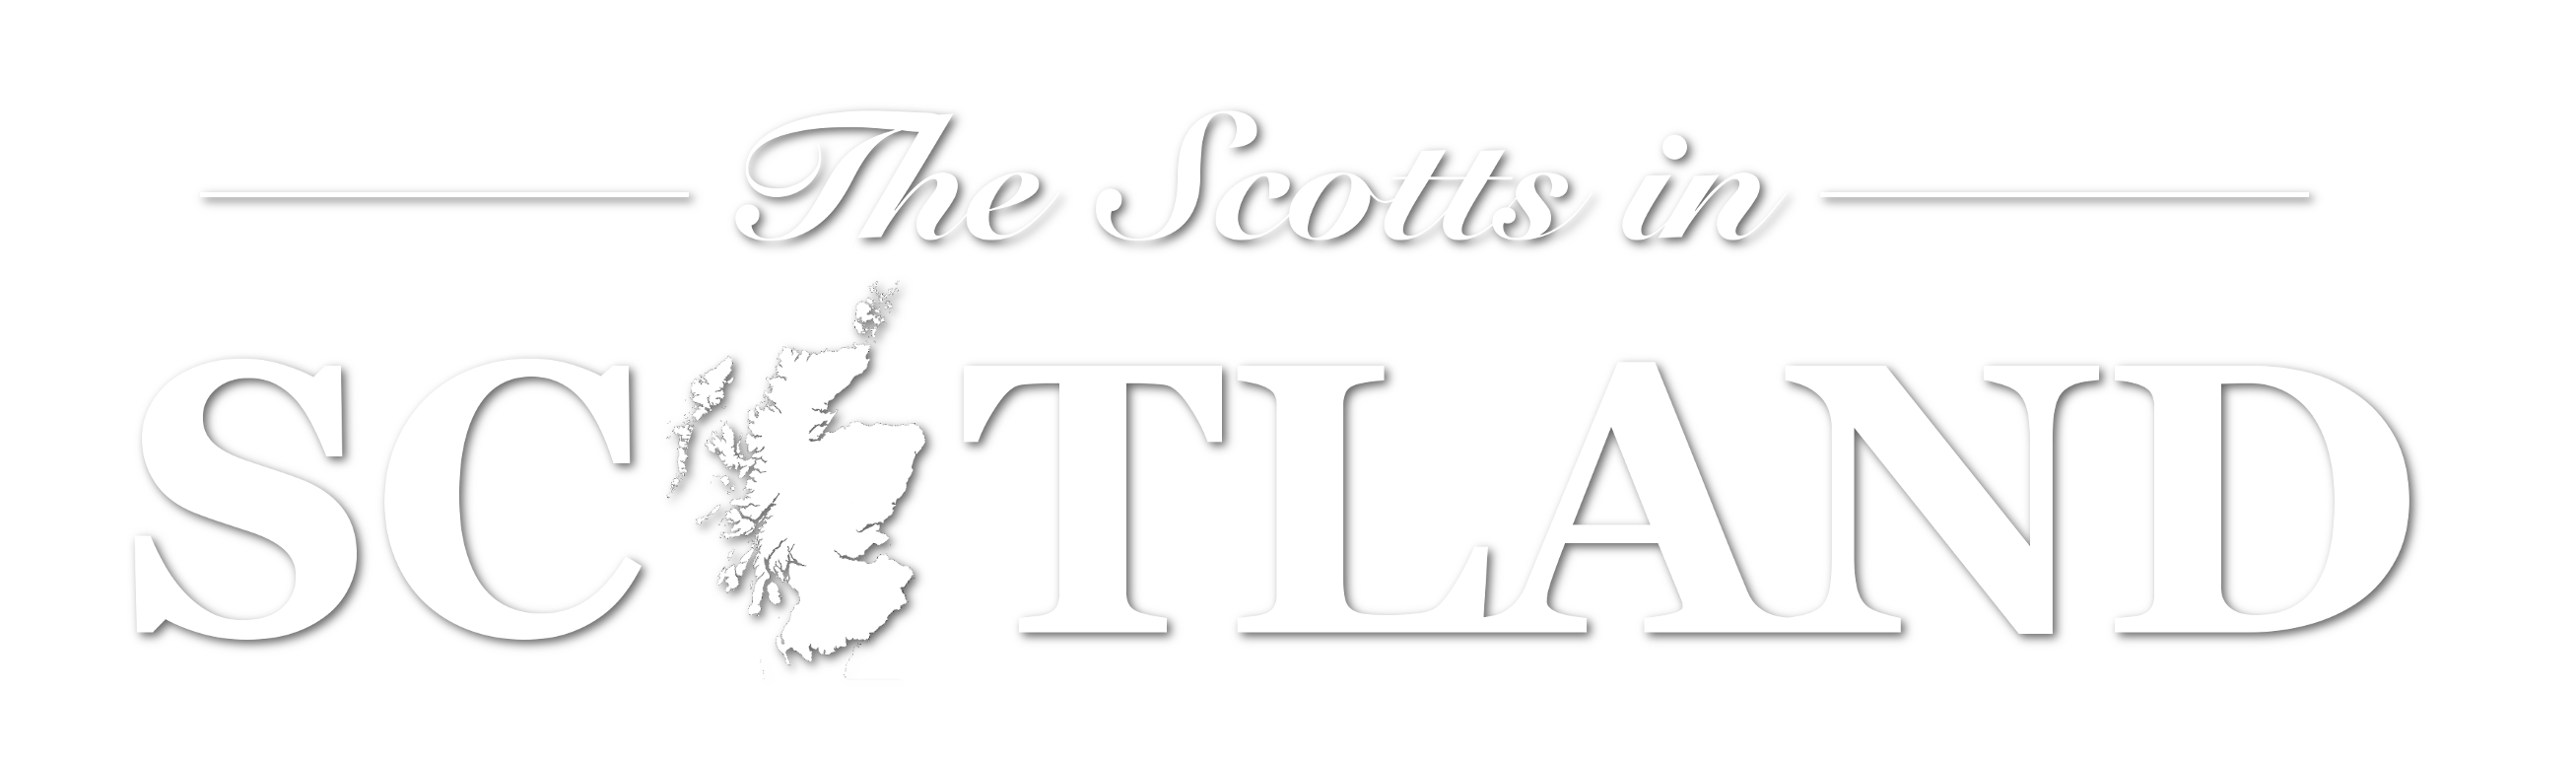 The Scotts in Scotland